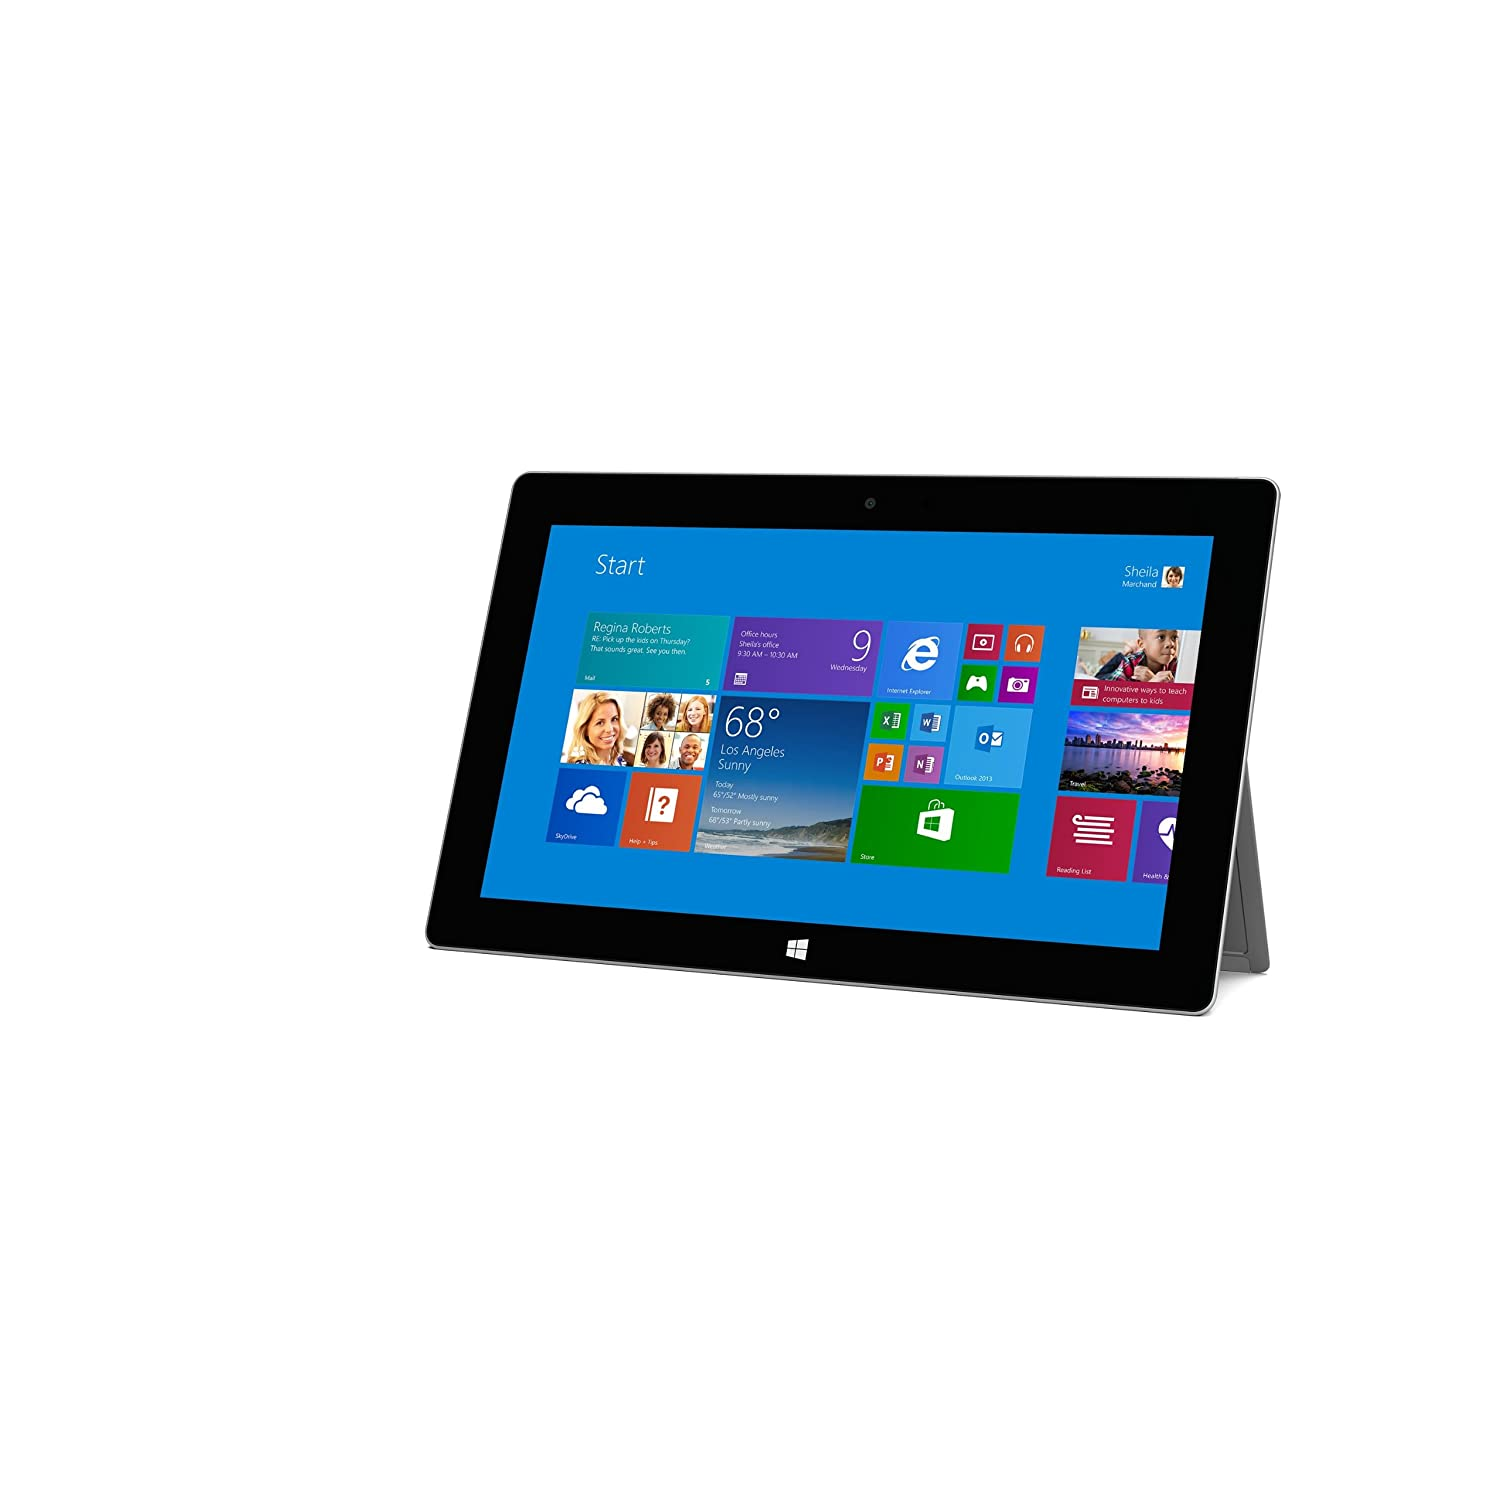 Microsoft 微软 Surface 2 32GB  ¥2299